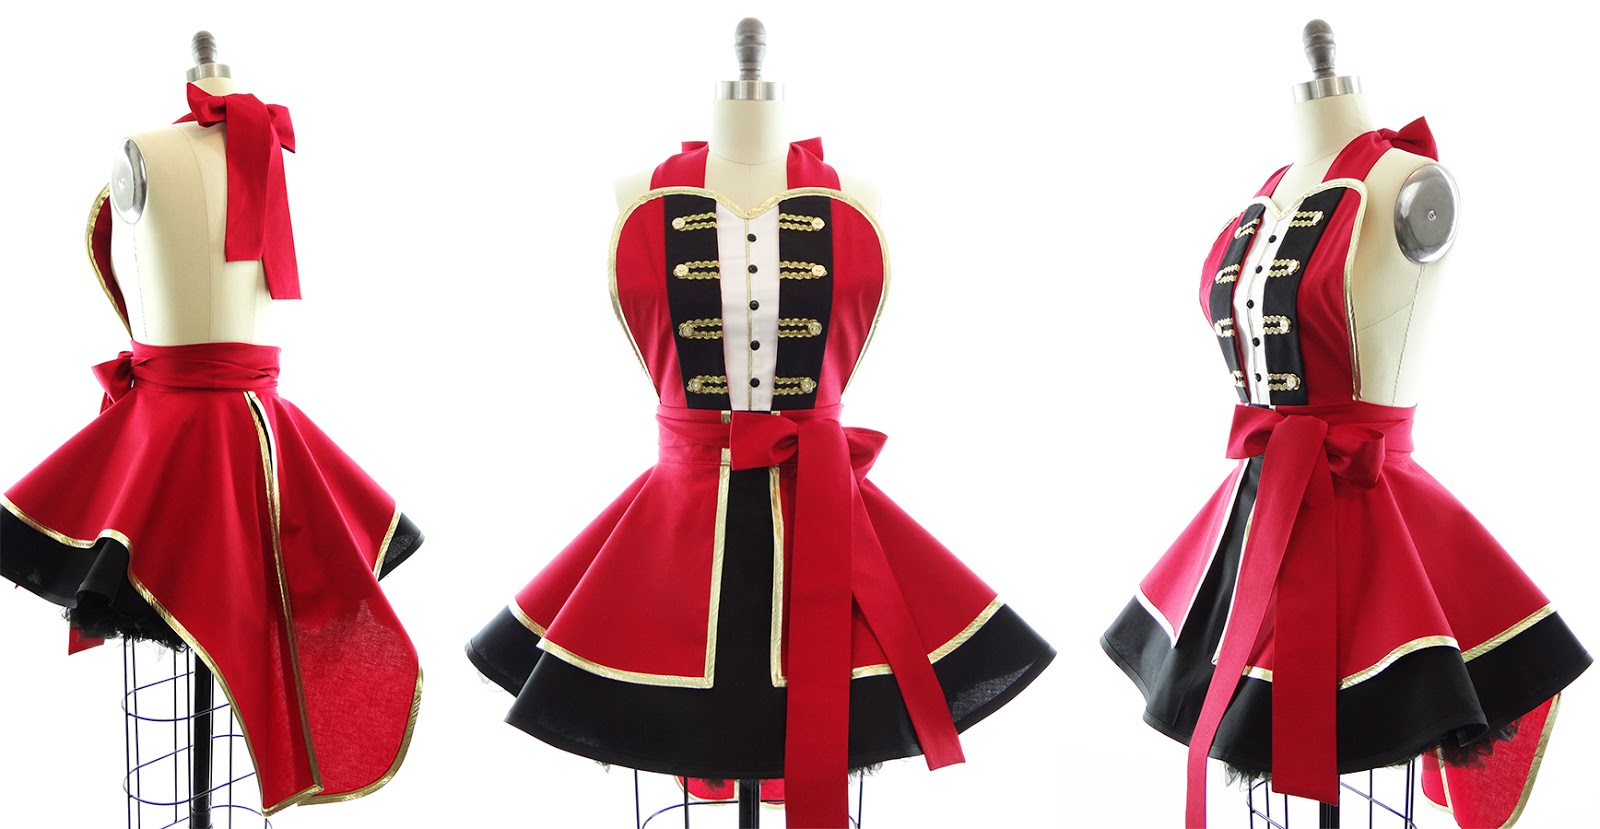 The Greatest Showman Party Ideas - Costume Apron by Bambino Amore